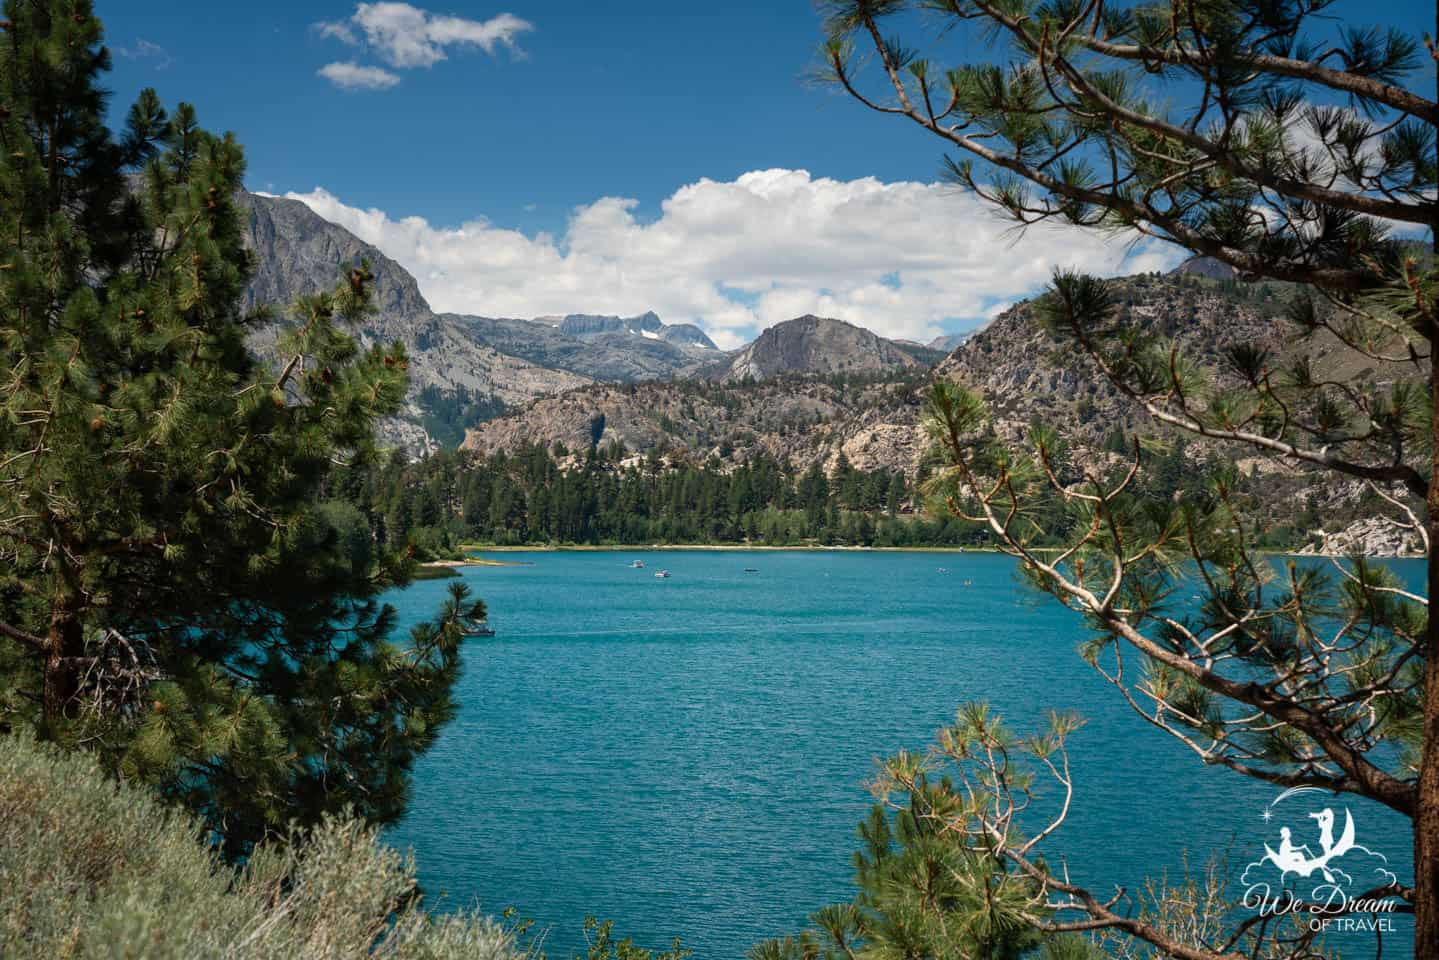 Gazing out at the inviting waters of June Lakes from a roadside viewpoint.